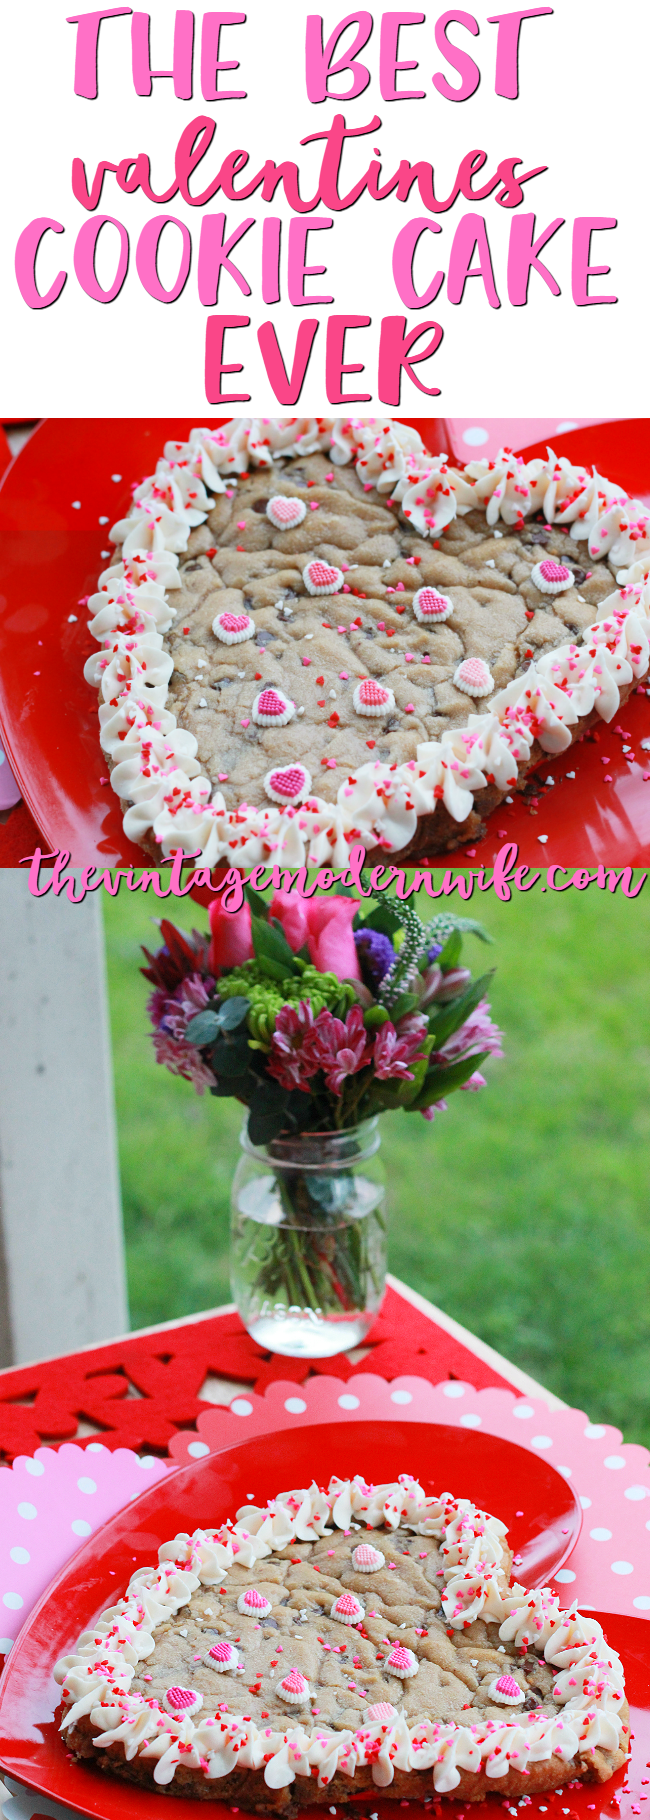 Want to surprise the love of your life with a fun dessert for Valentine's? This is the Best Valentine's Cookie Cake Ever and one that will win over the heart of anyone that you are looking for cupid's arrow to hit!